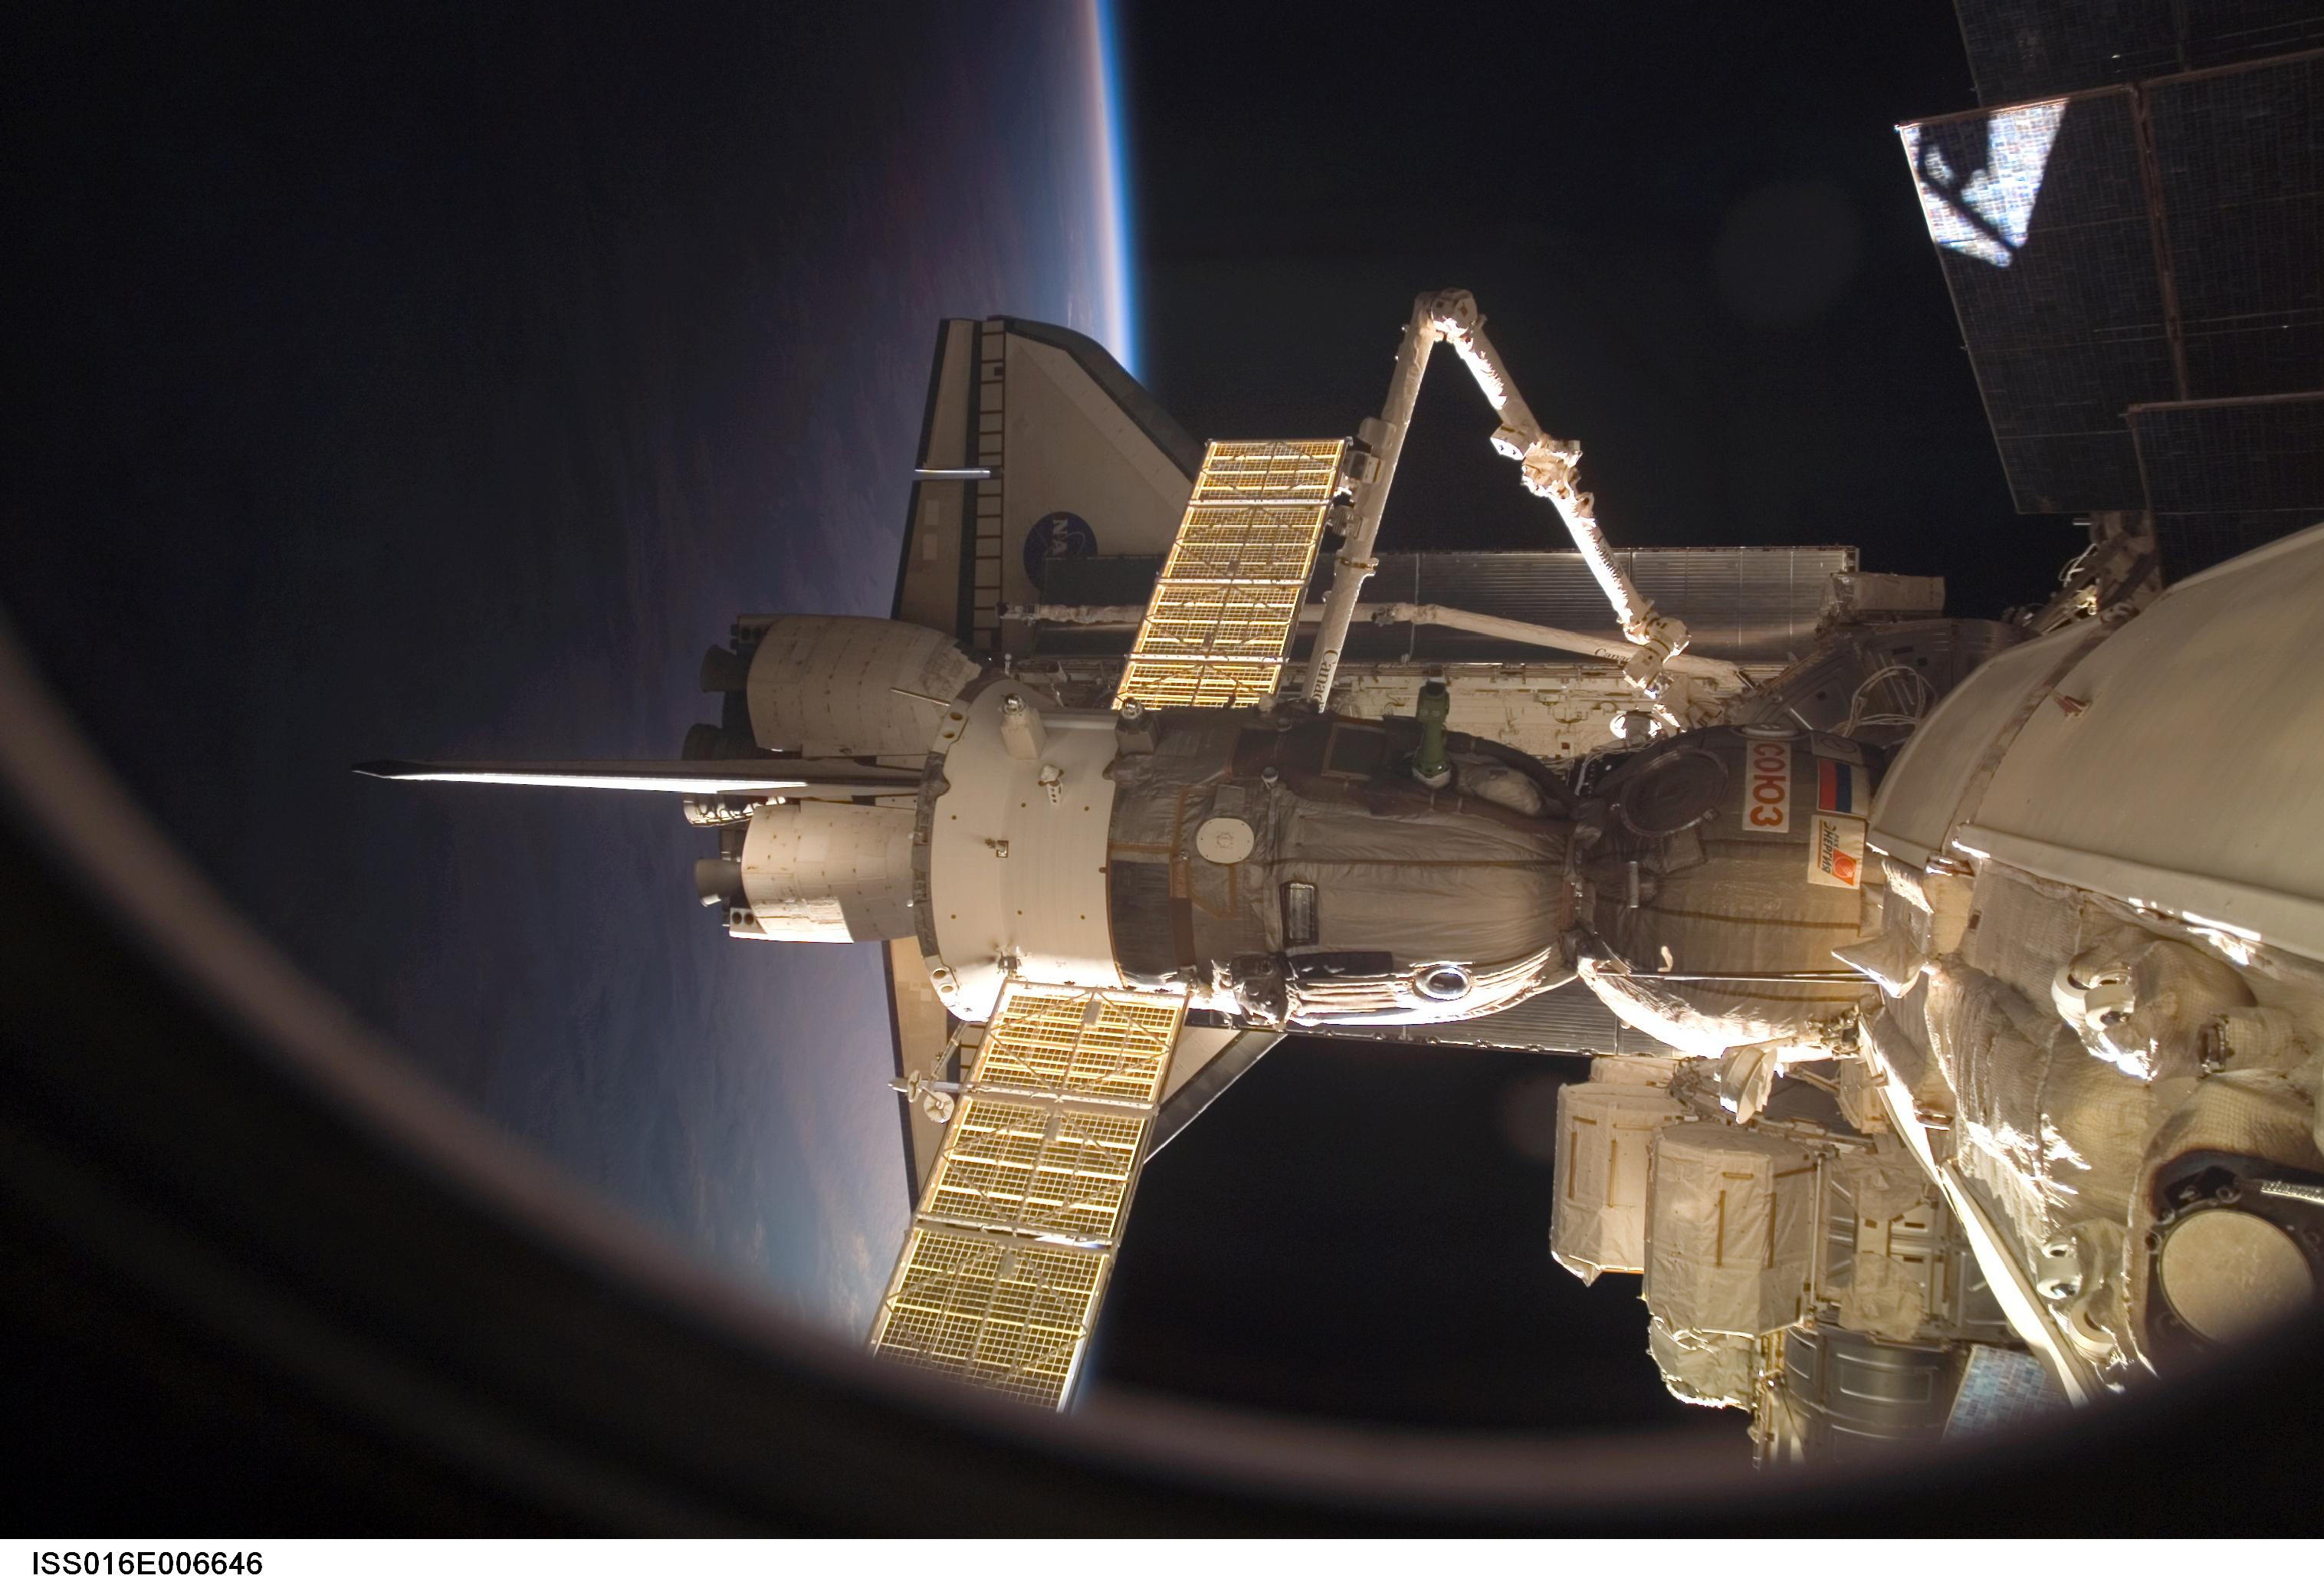 Shuttle and Soyuz docked at the Station